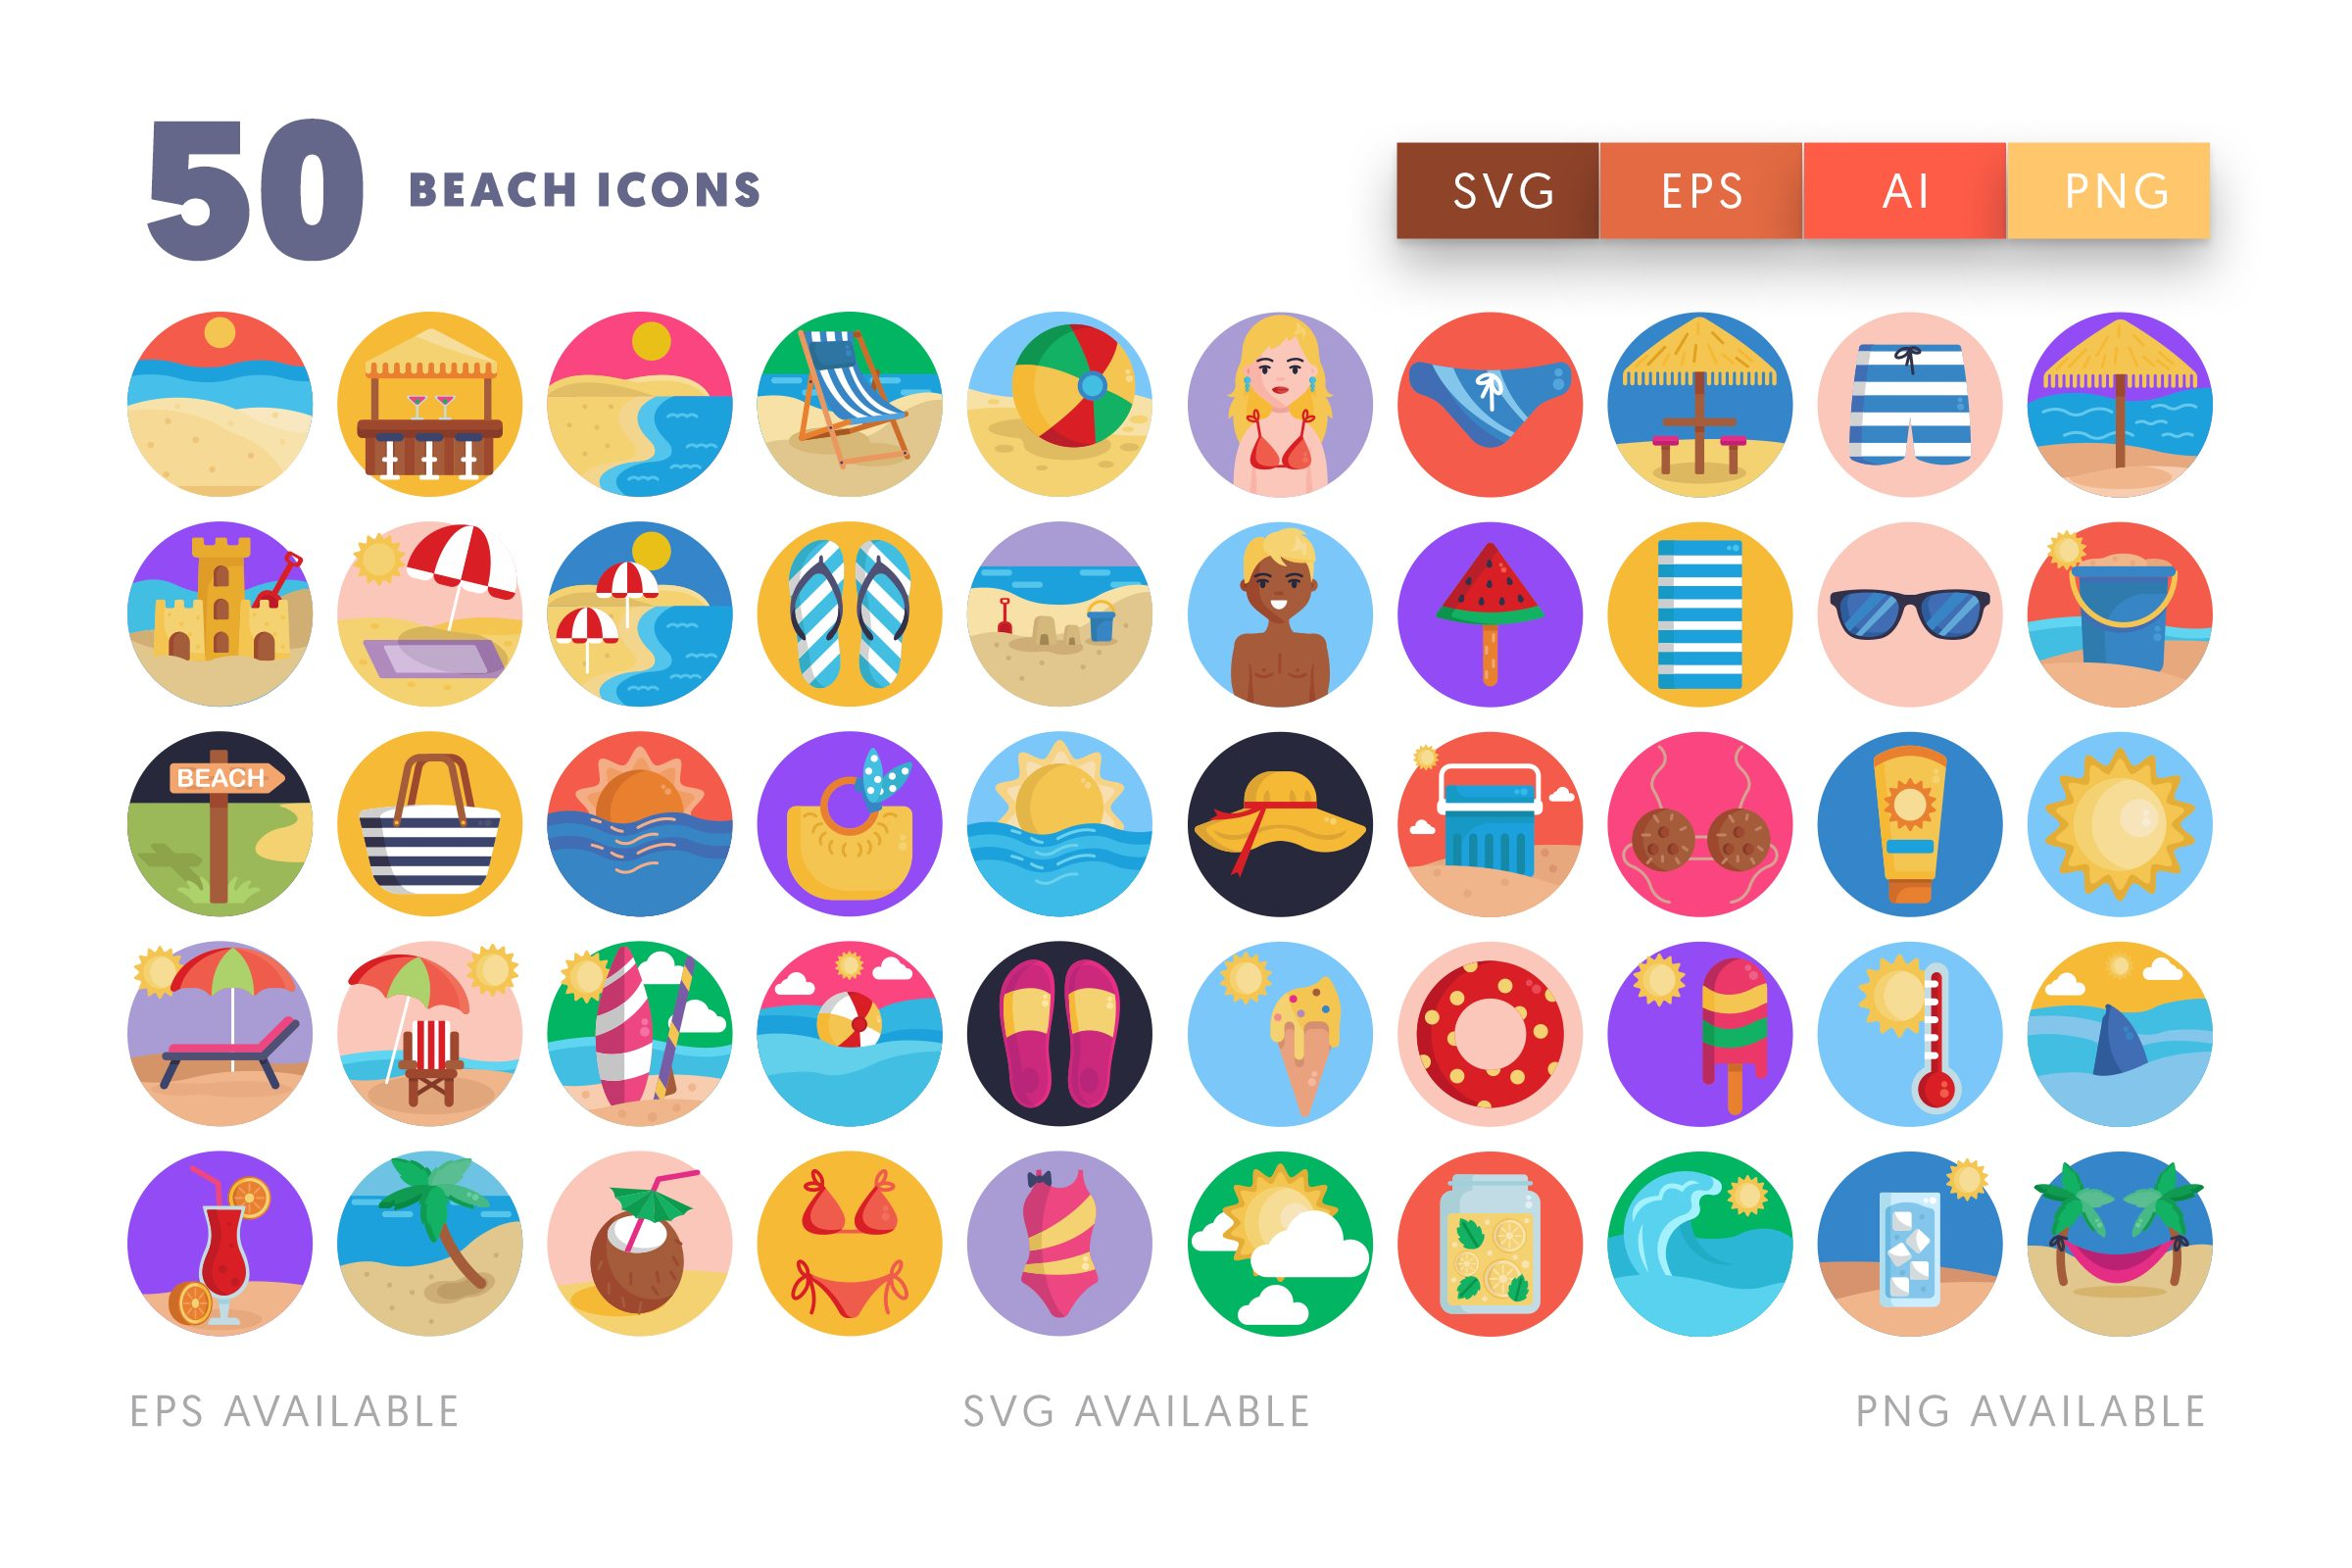 Beach icons png/svg/eps